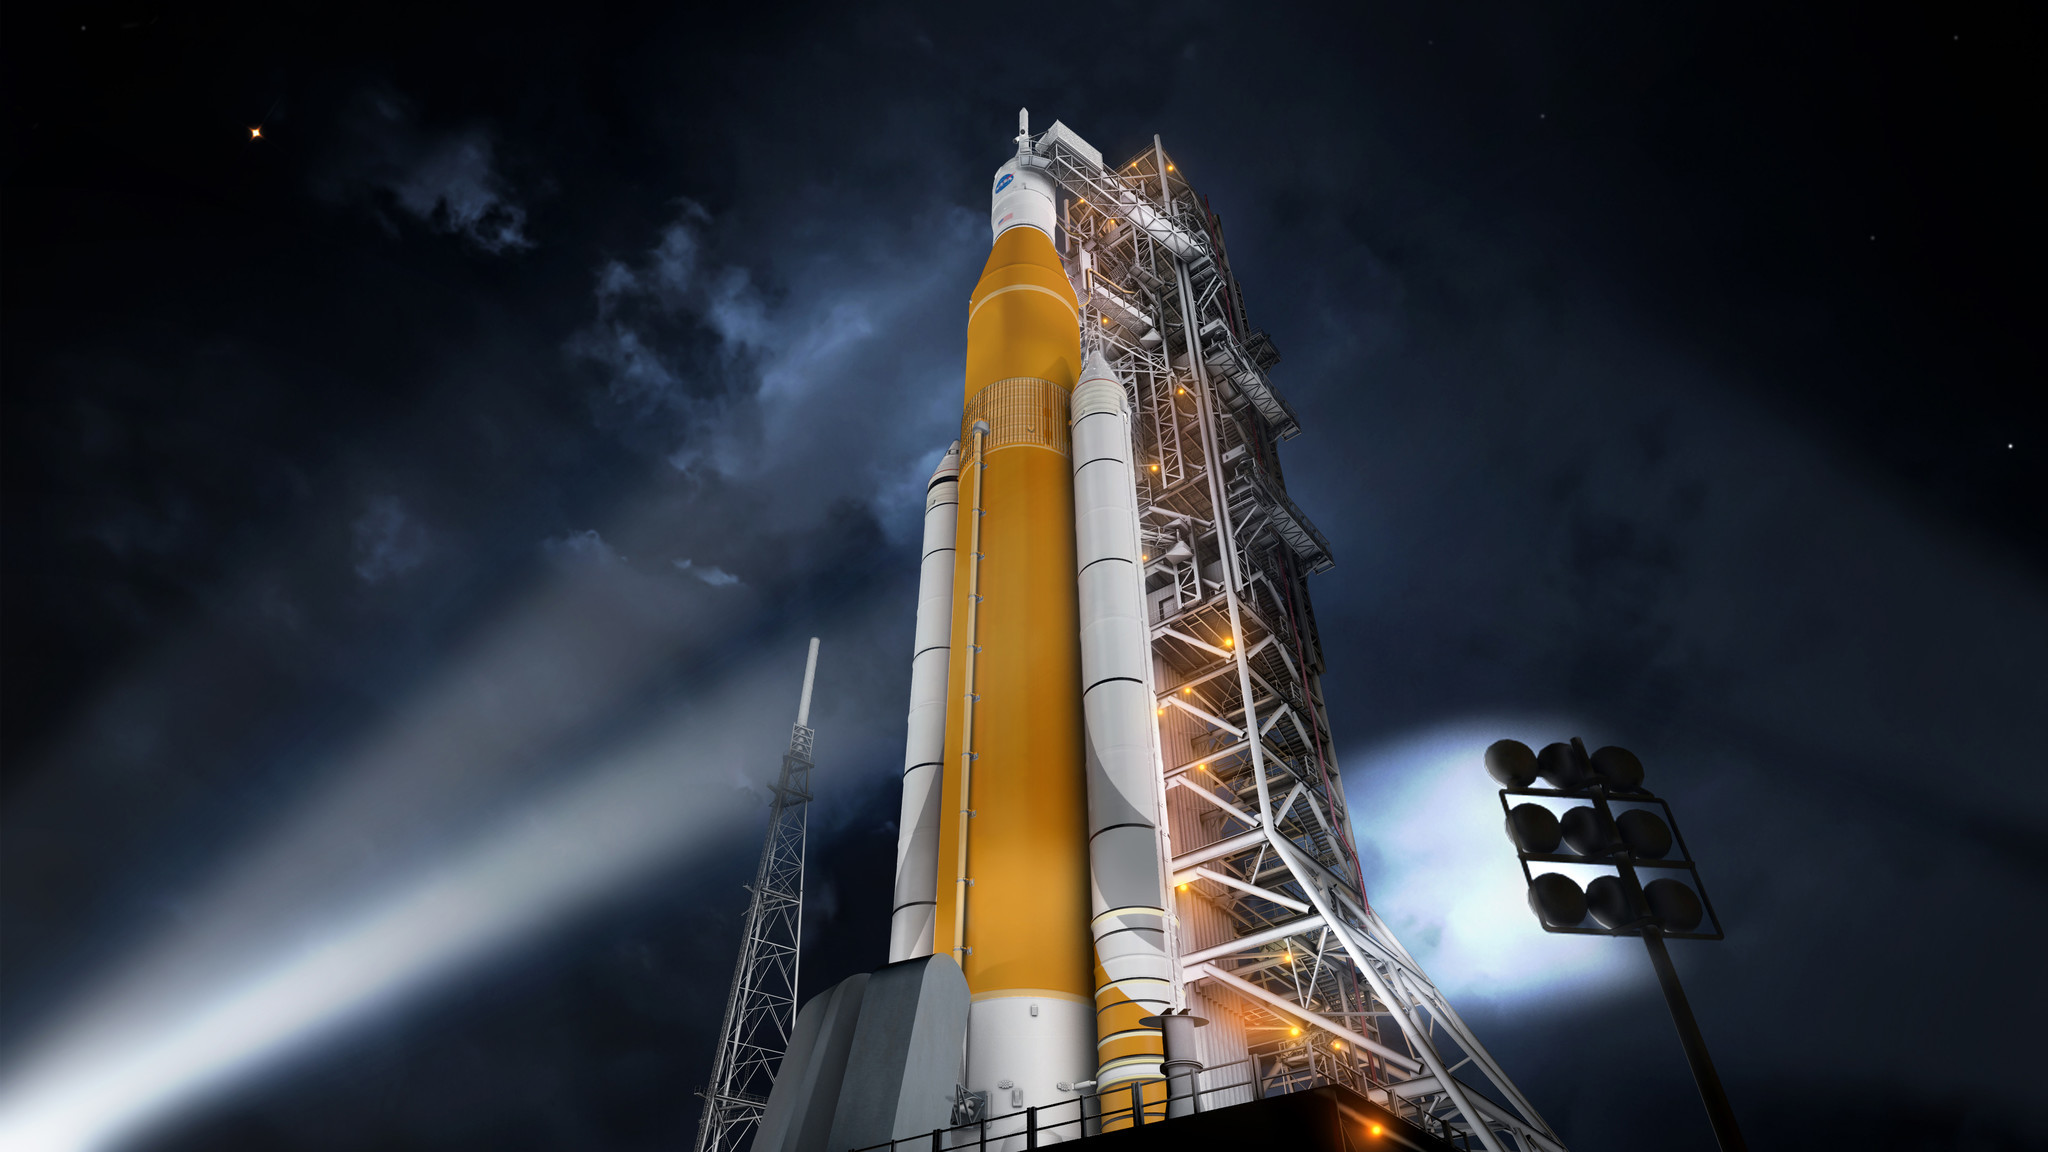 A rendering of NASA's Space Launch System.